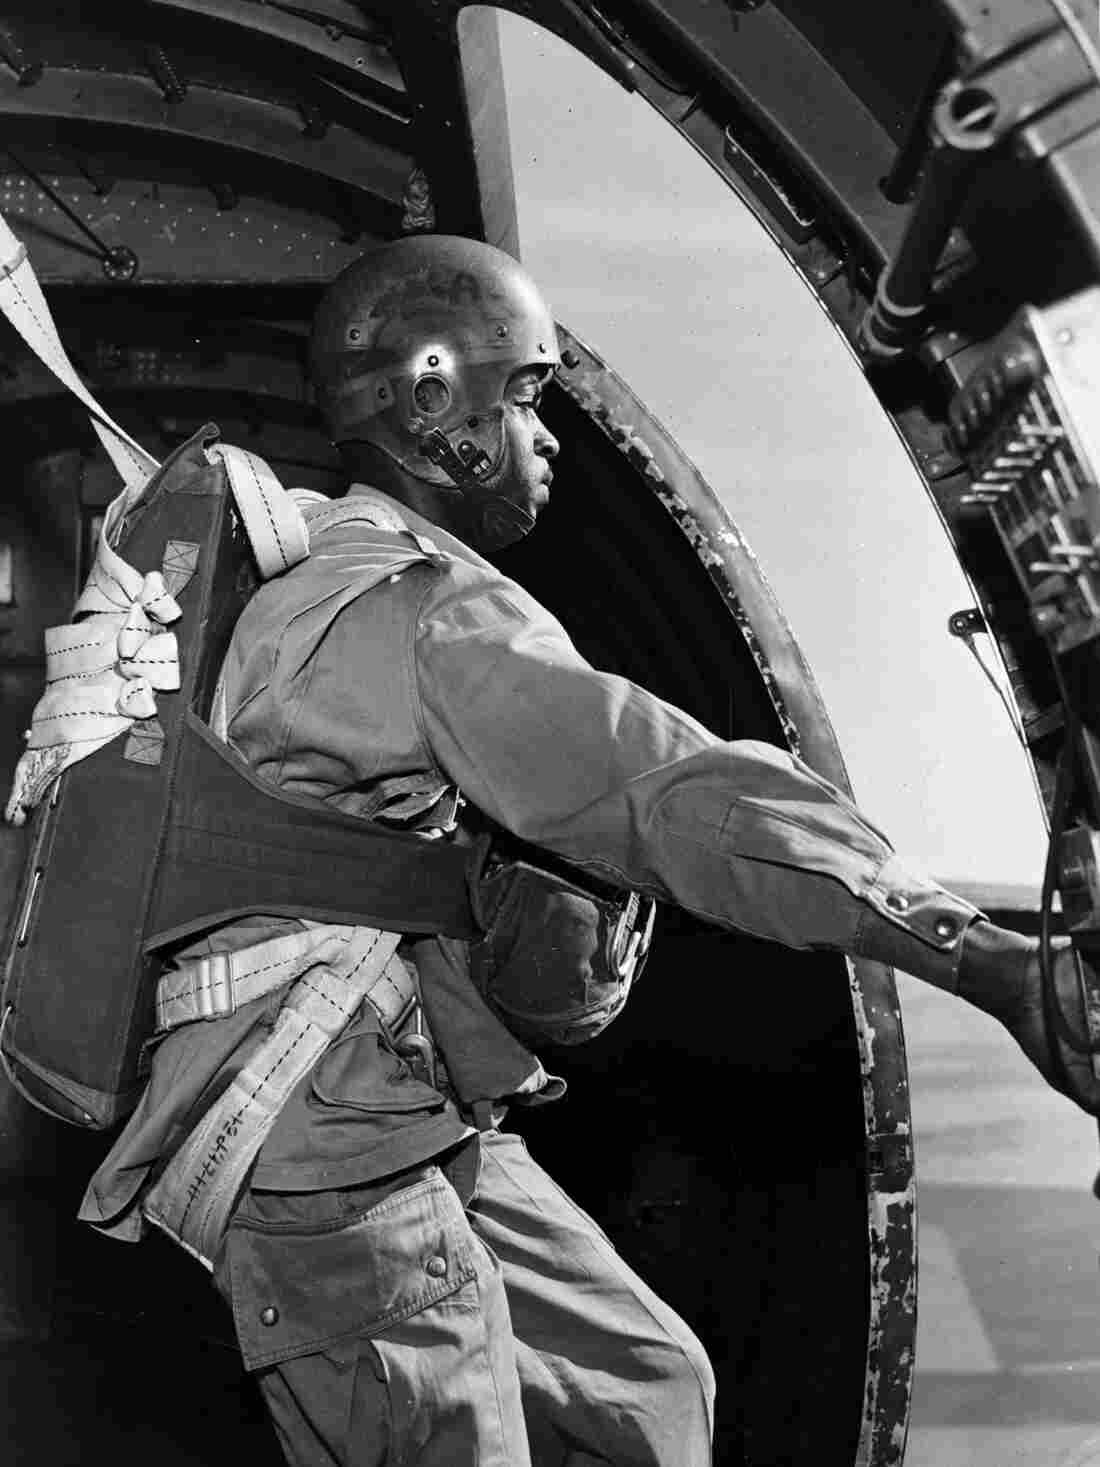 Smokejumper Jesse Mayes preparing to jump from a C-47.